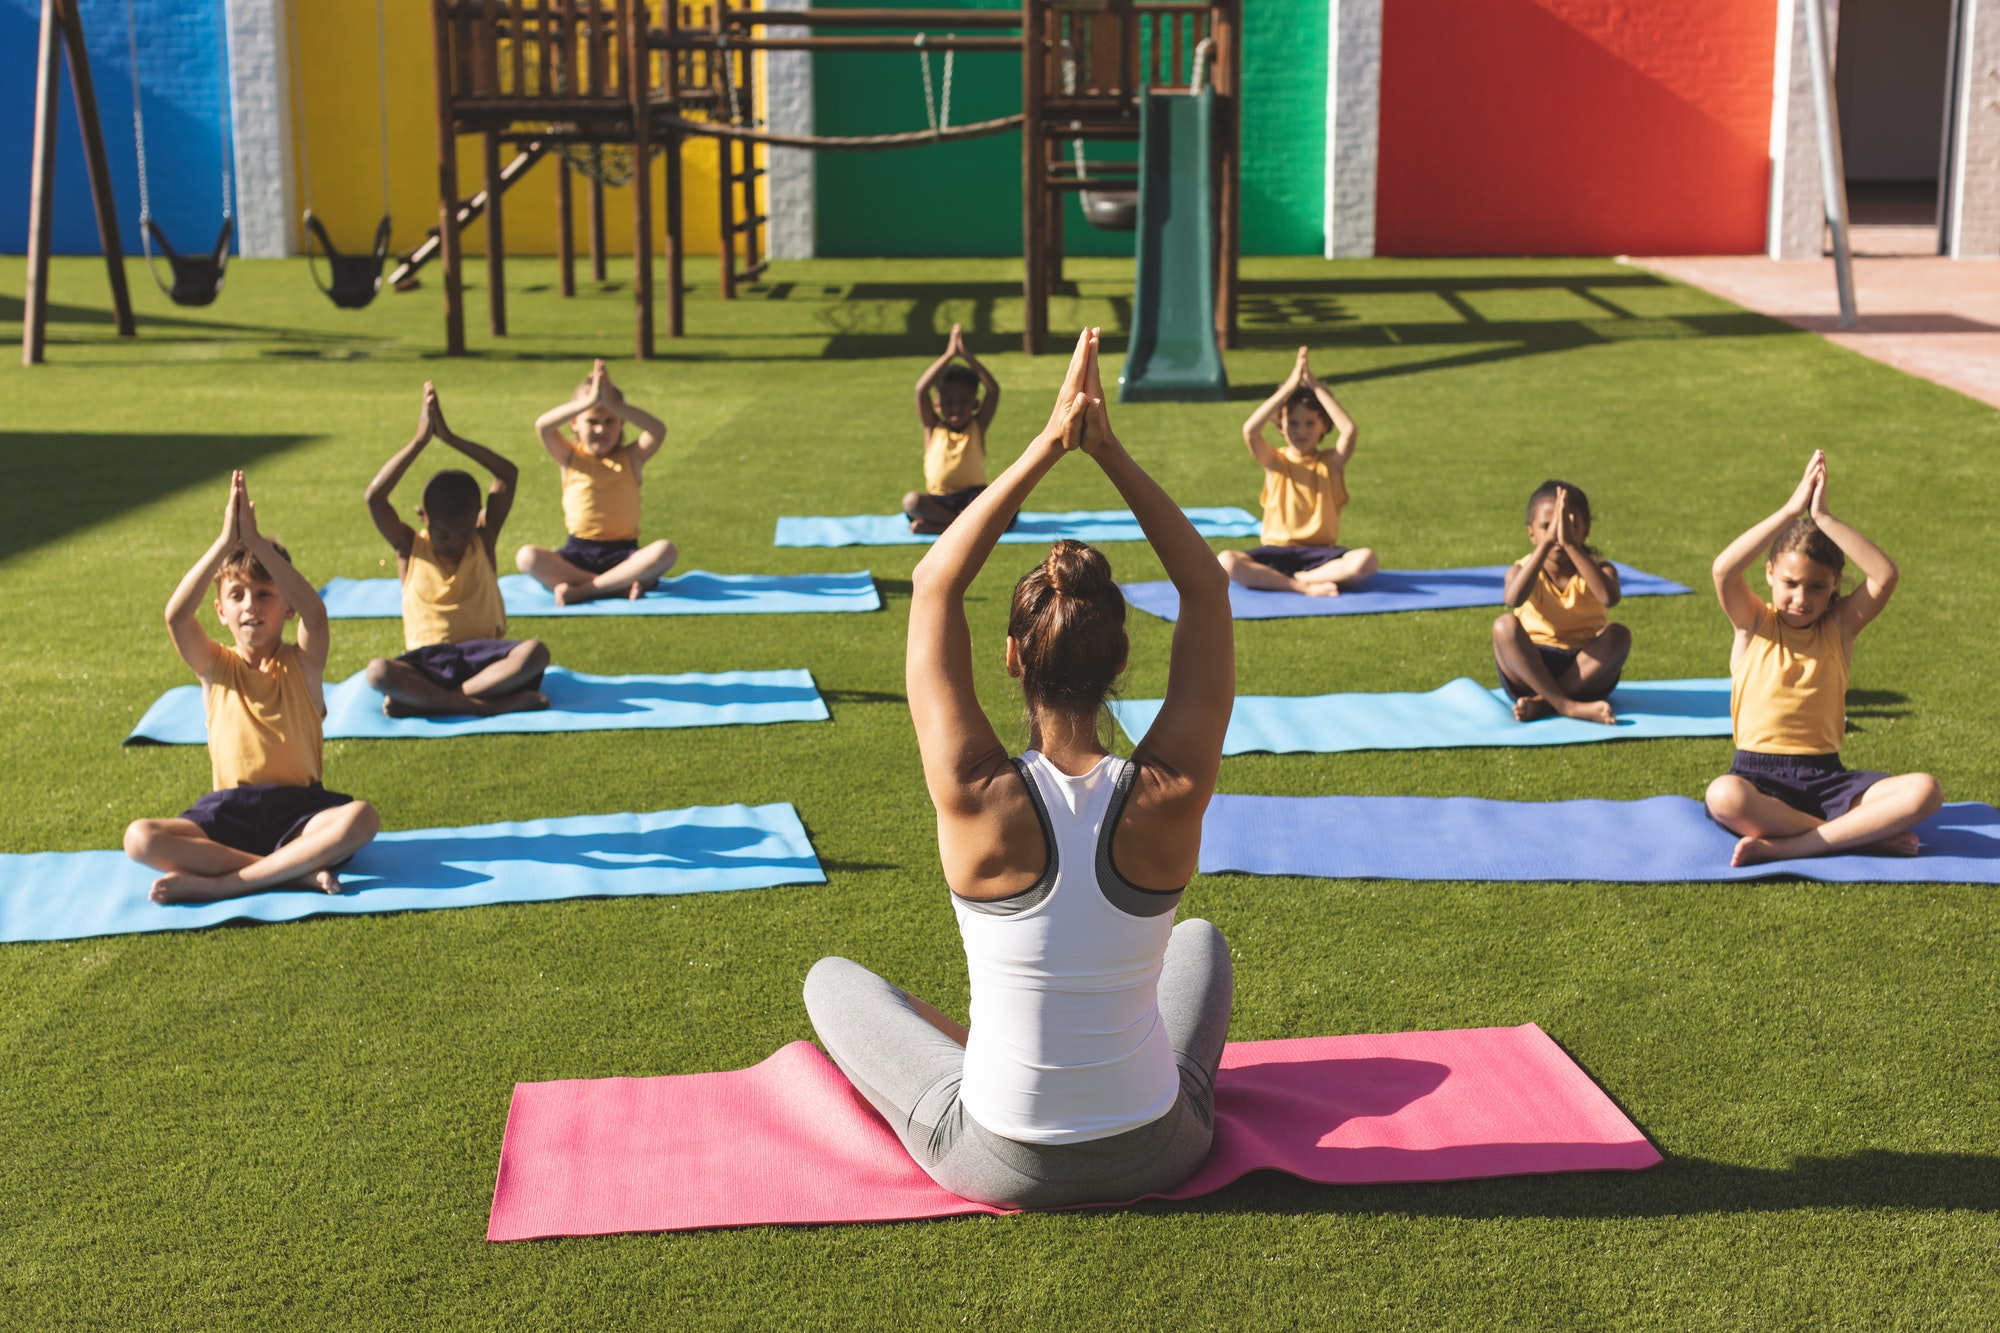 Trainer teaching yoga to students in yoga mat in school playground at schoolyard